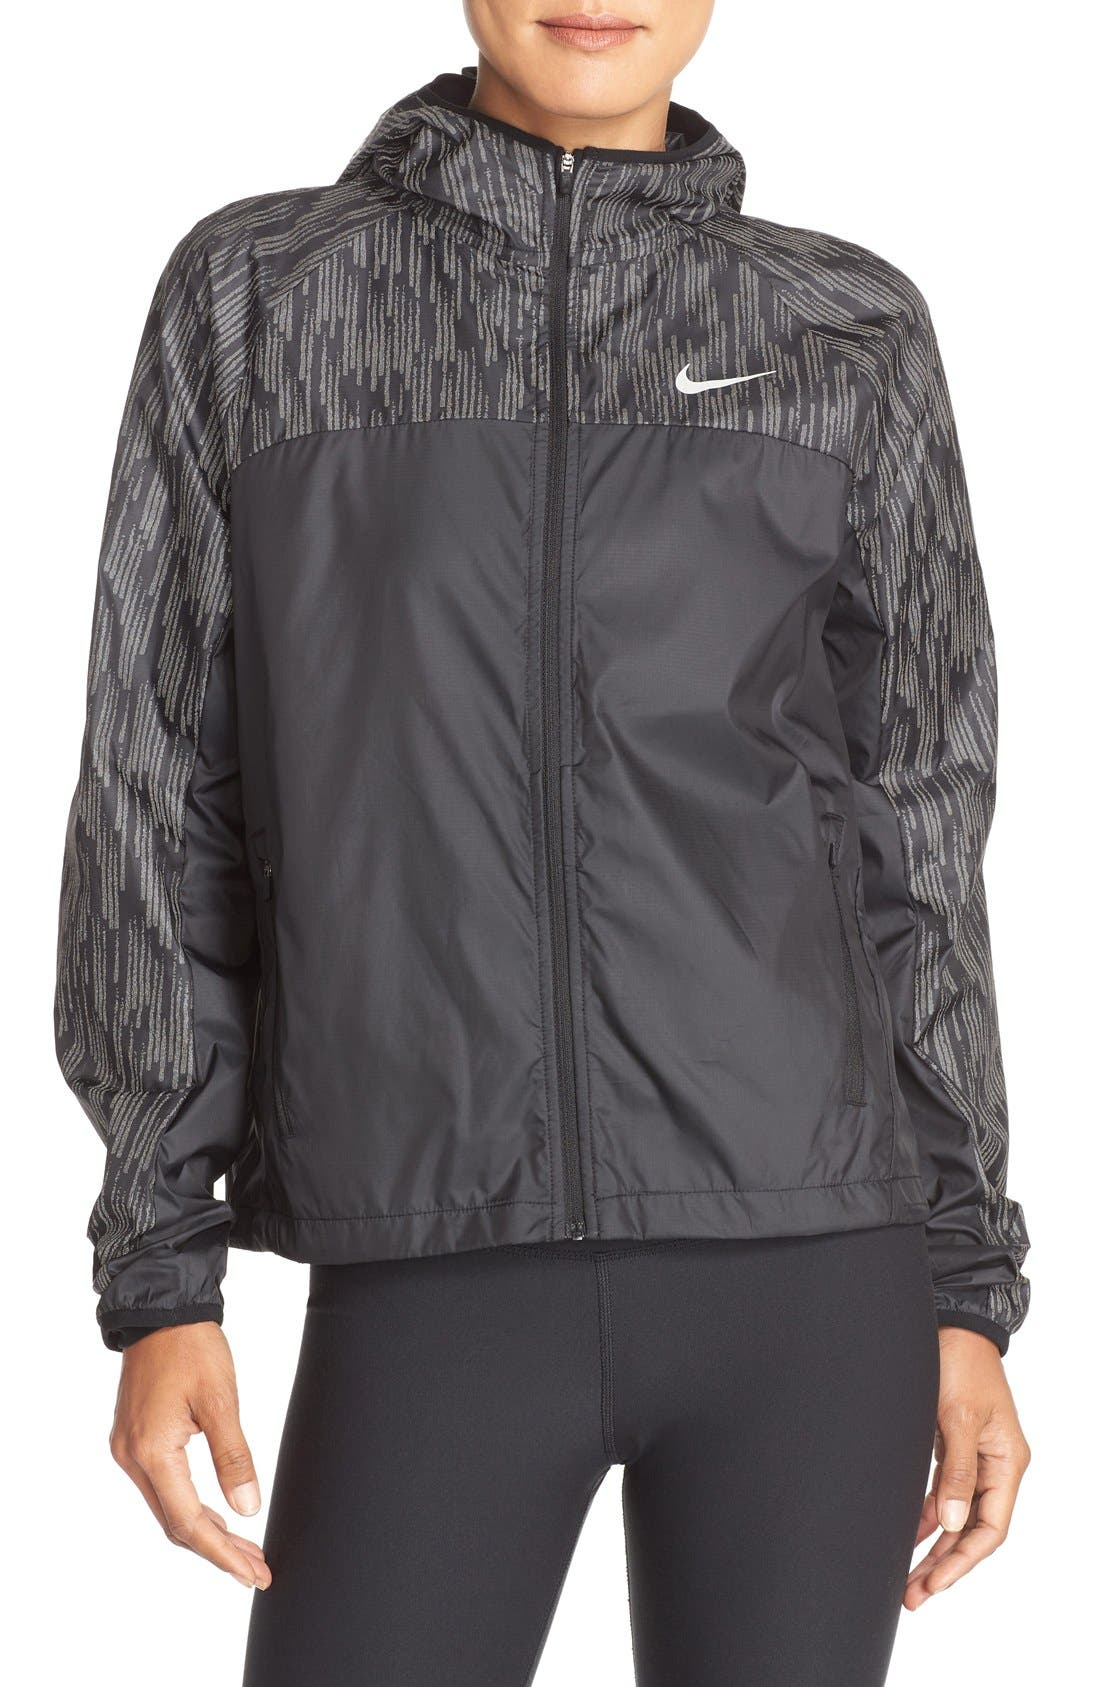 NIKE Shield Flash Running Jacket, Main, color, 010